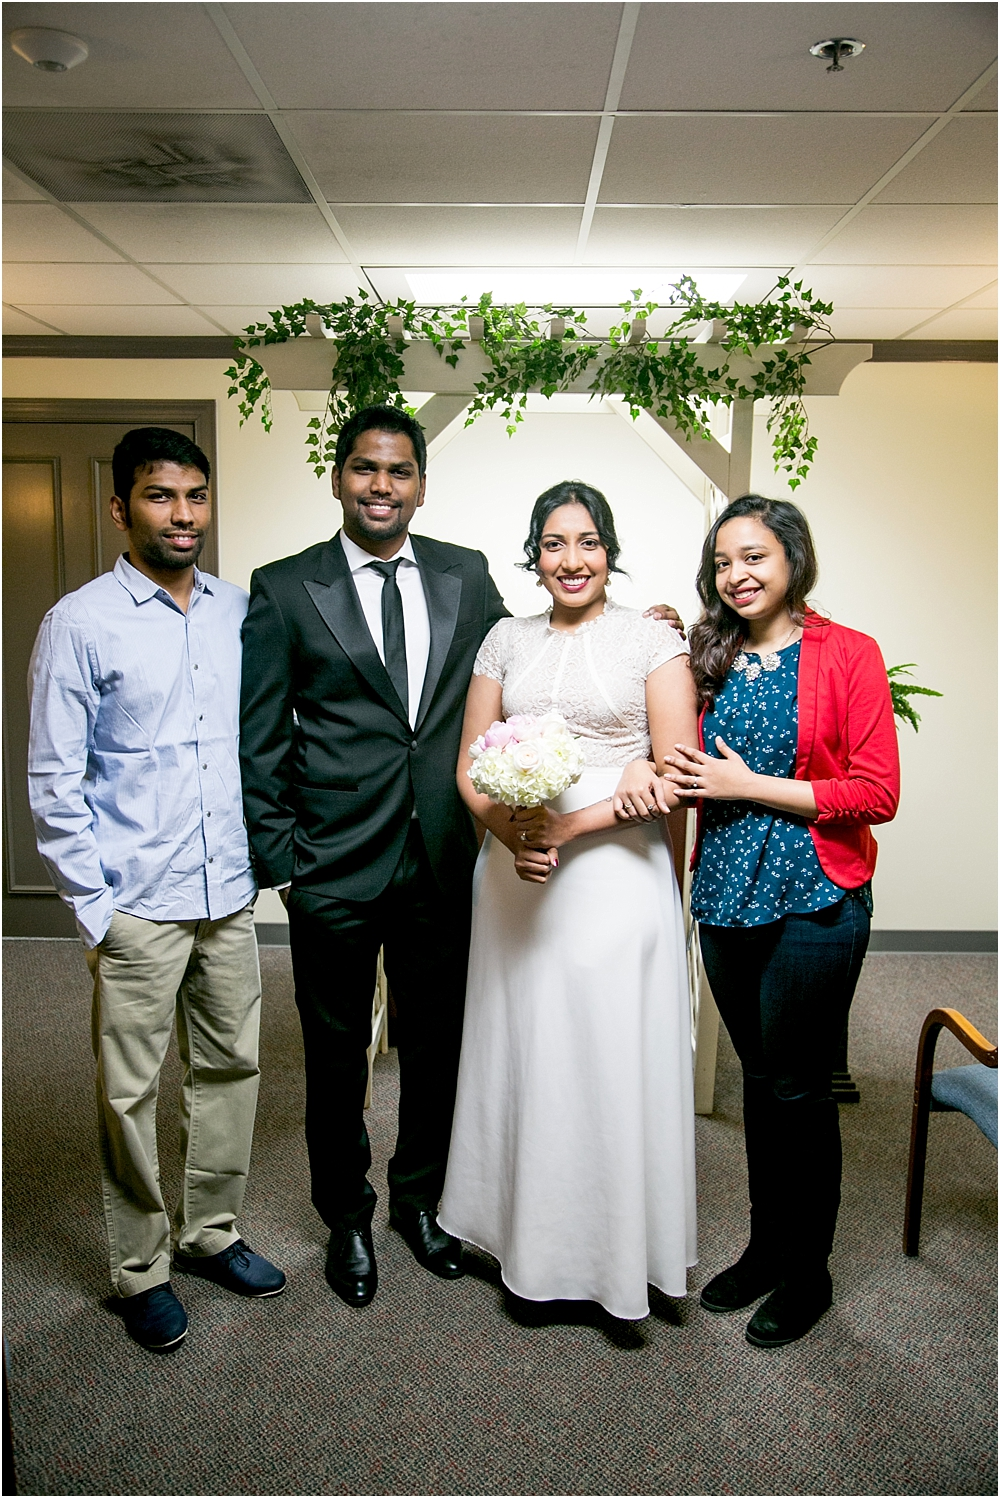 neelima praveen maryland courthouse wedding living radiant photography_0005.jpg